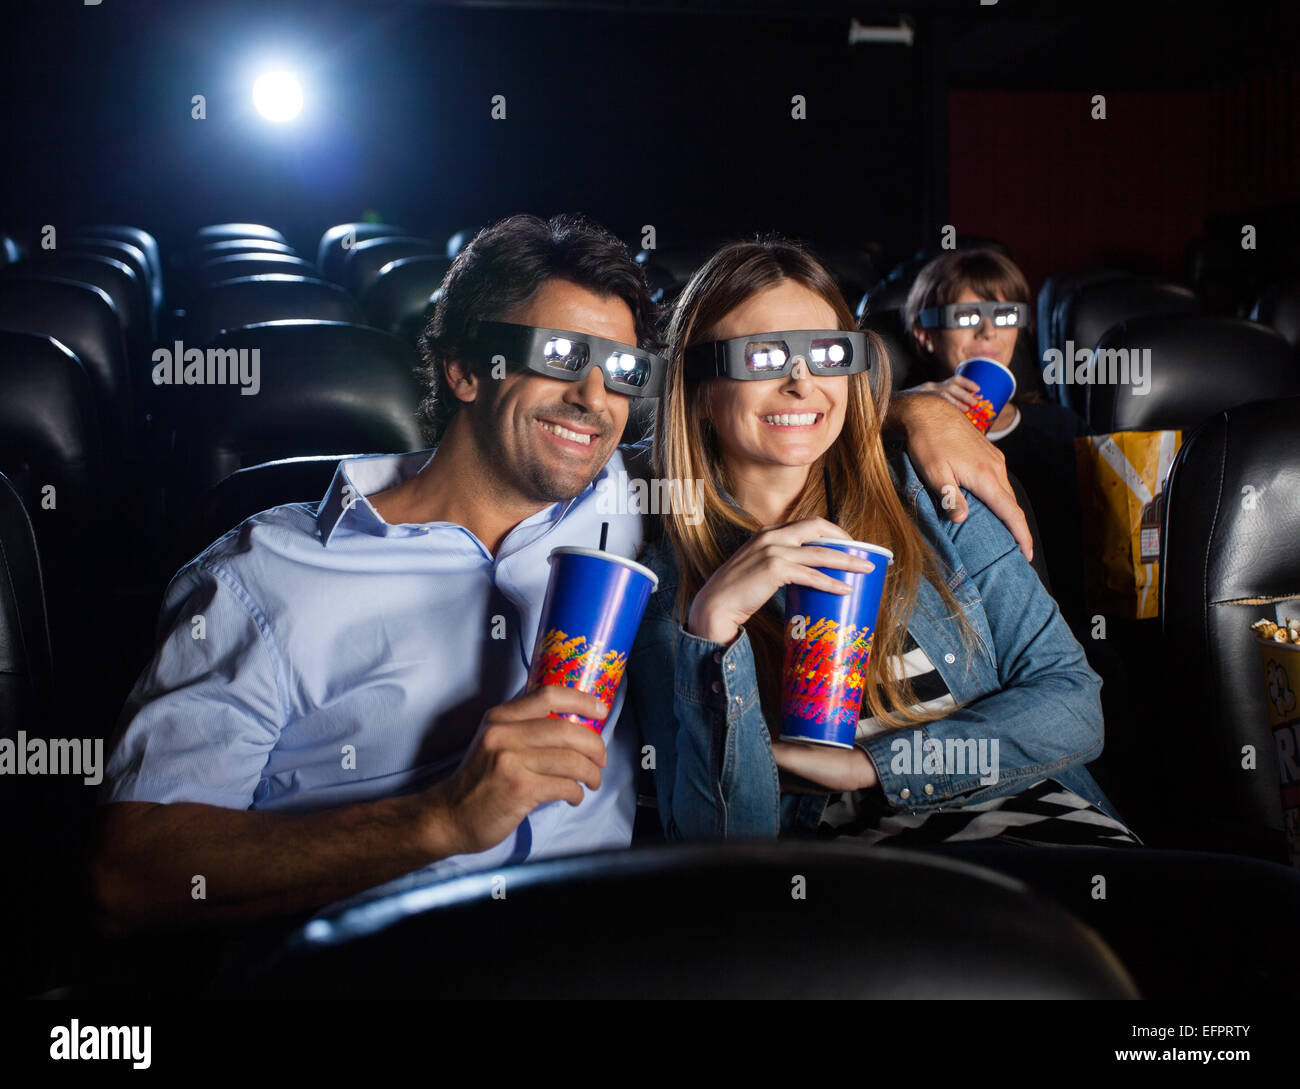 Happy Couple Watching 3D Movie In Theater Stock Photo